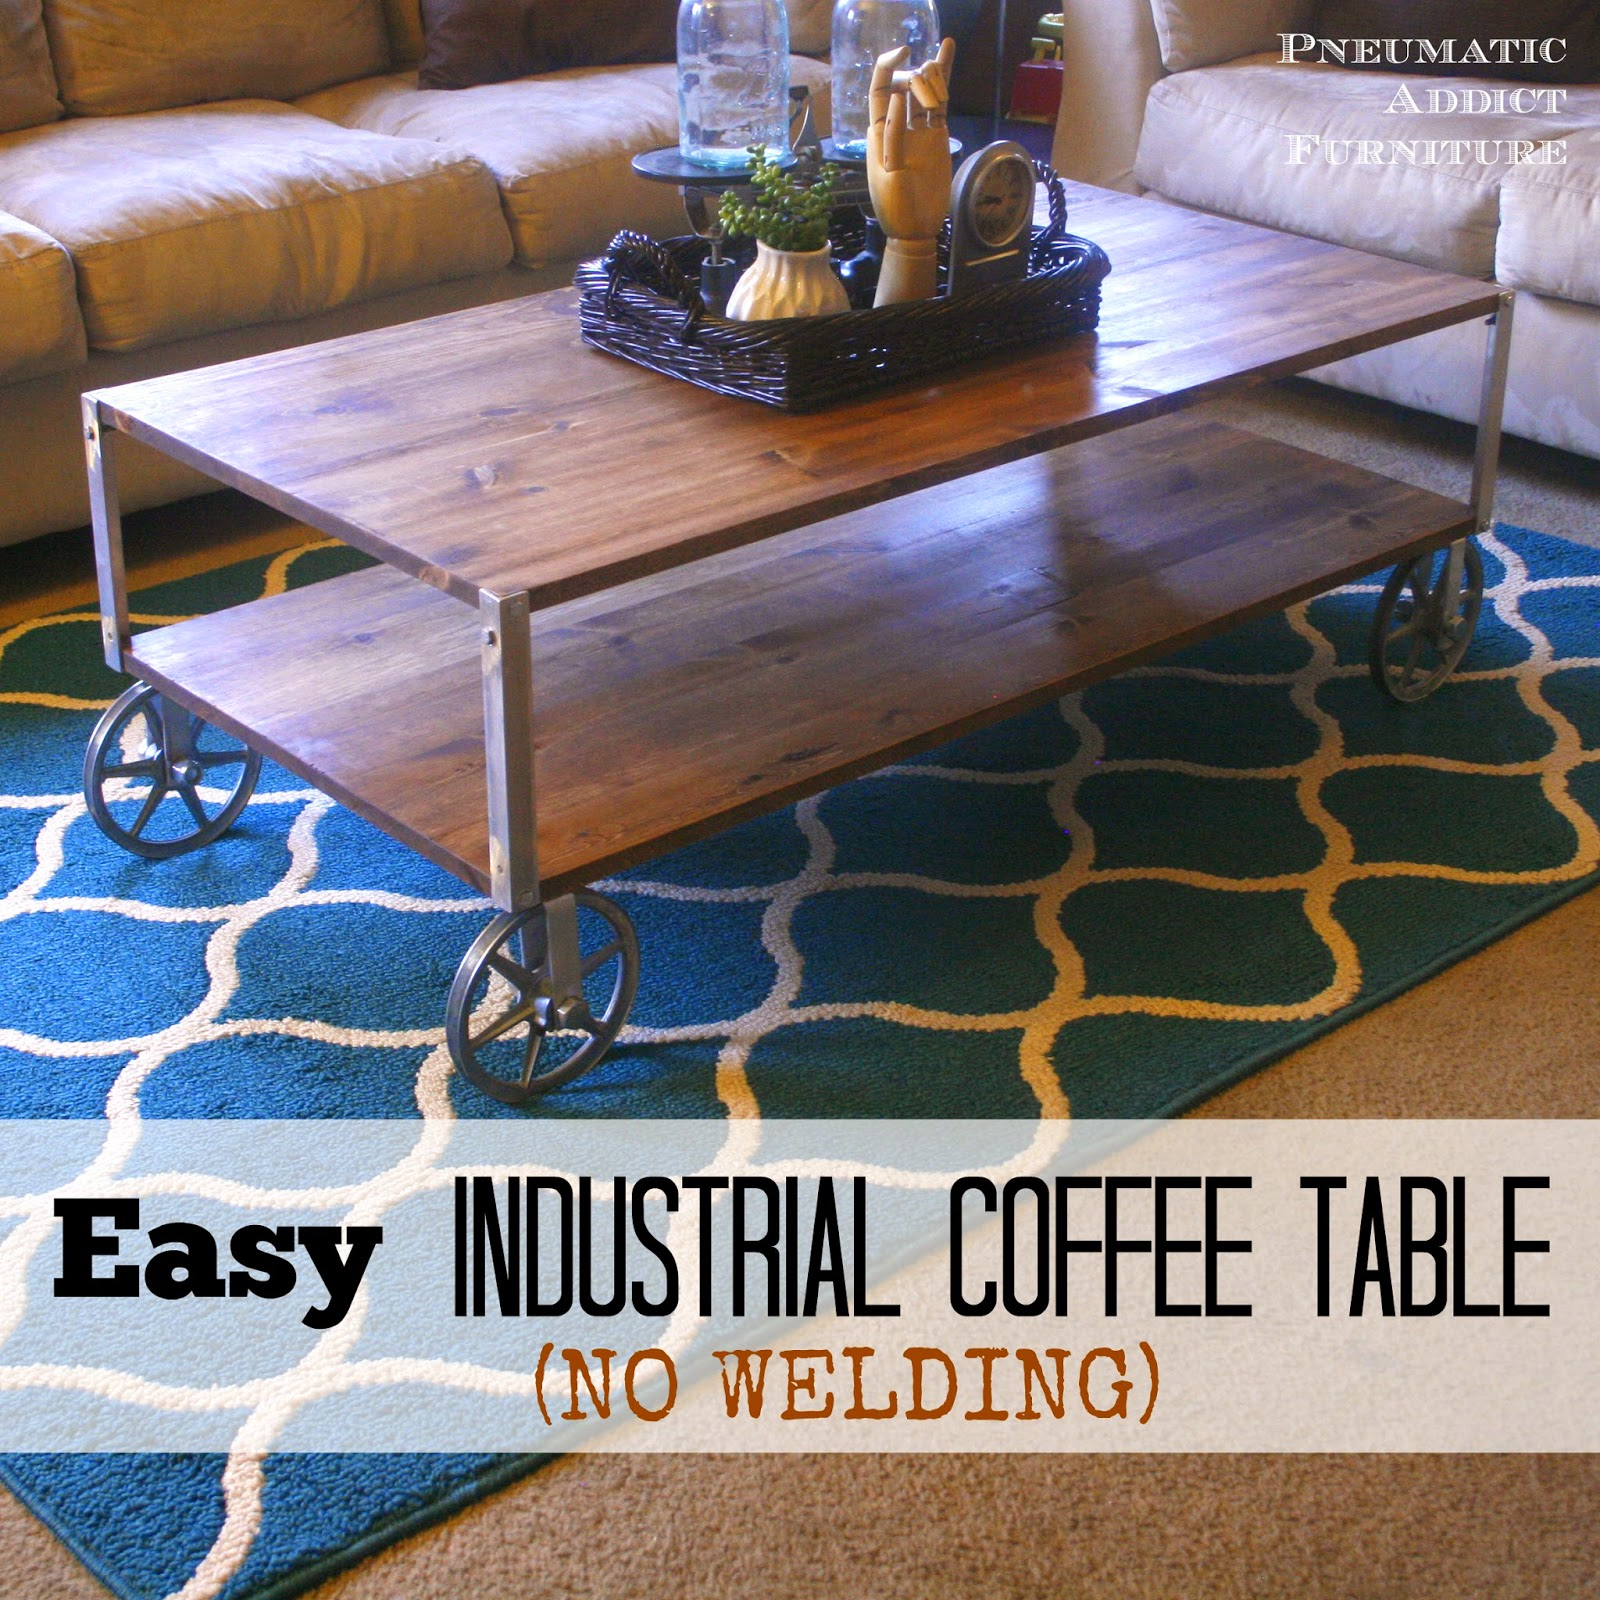 Pneumatic Addict EASY Industrial Coffee Table No Welding